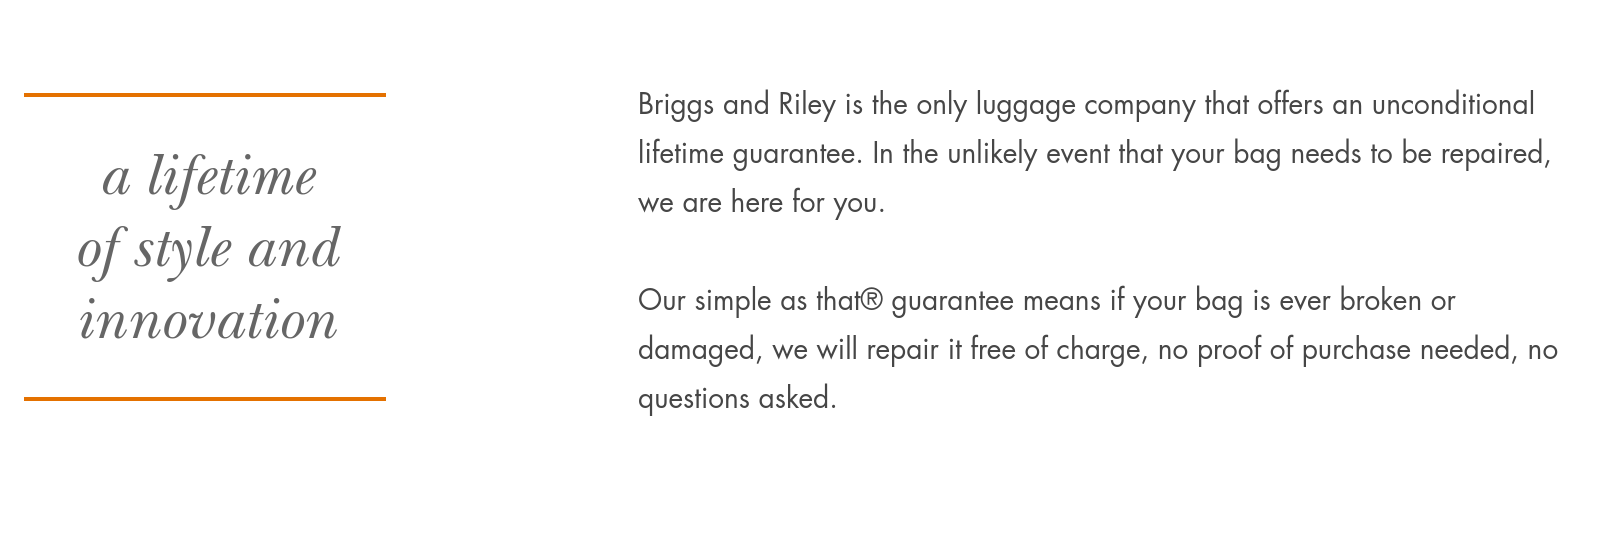 Briggs_Riley_lifetime_repair_policy